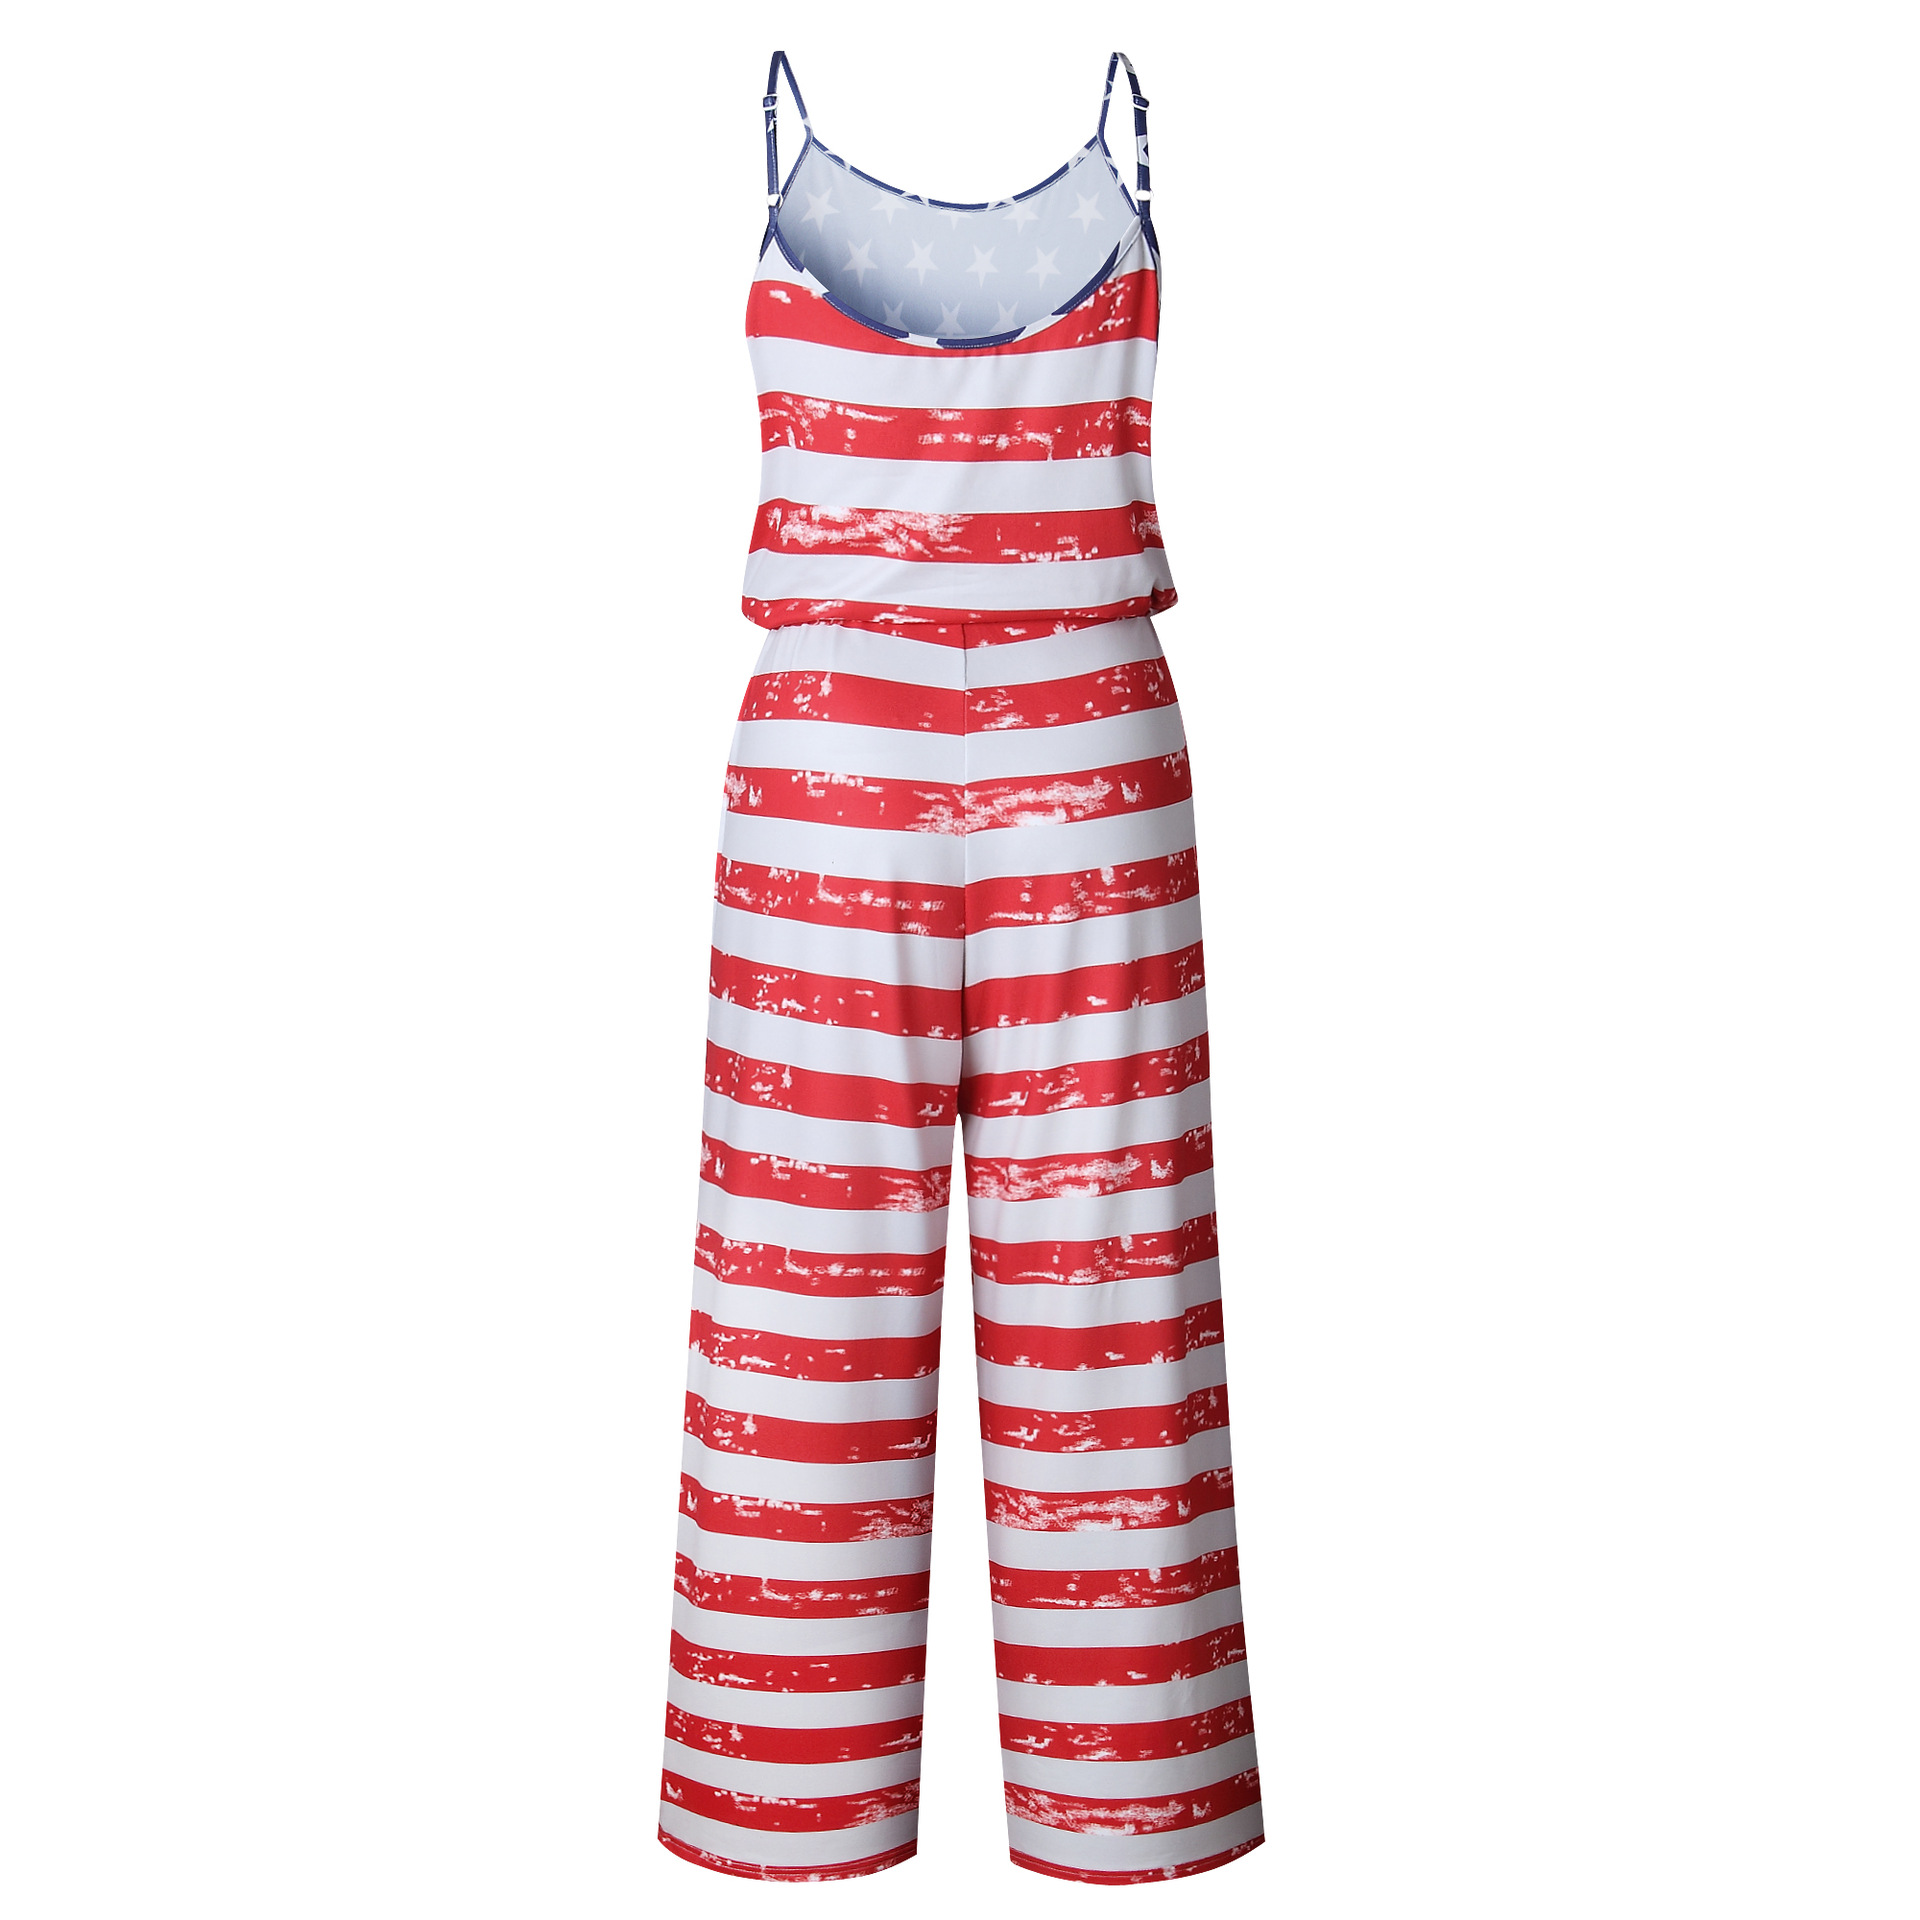 Spaghetti Strap Jumpsuit Women 2018 Summer Long Pants Floral Print Rompers Beach Casual Jumpsuits Sleeveless Sashes Playsuits 72